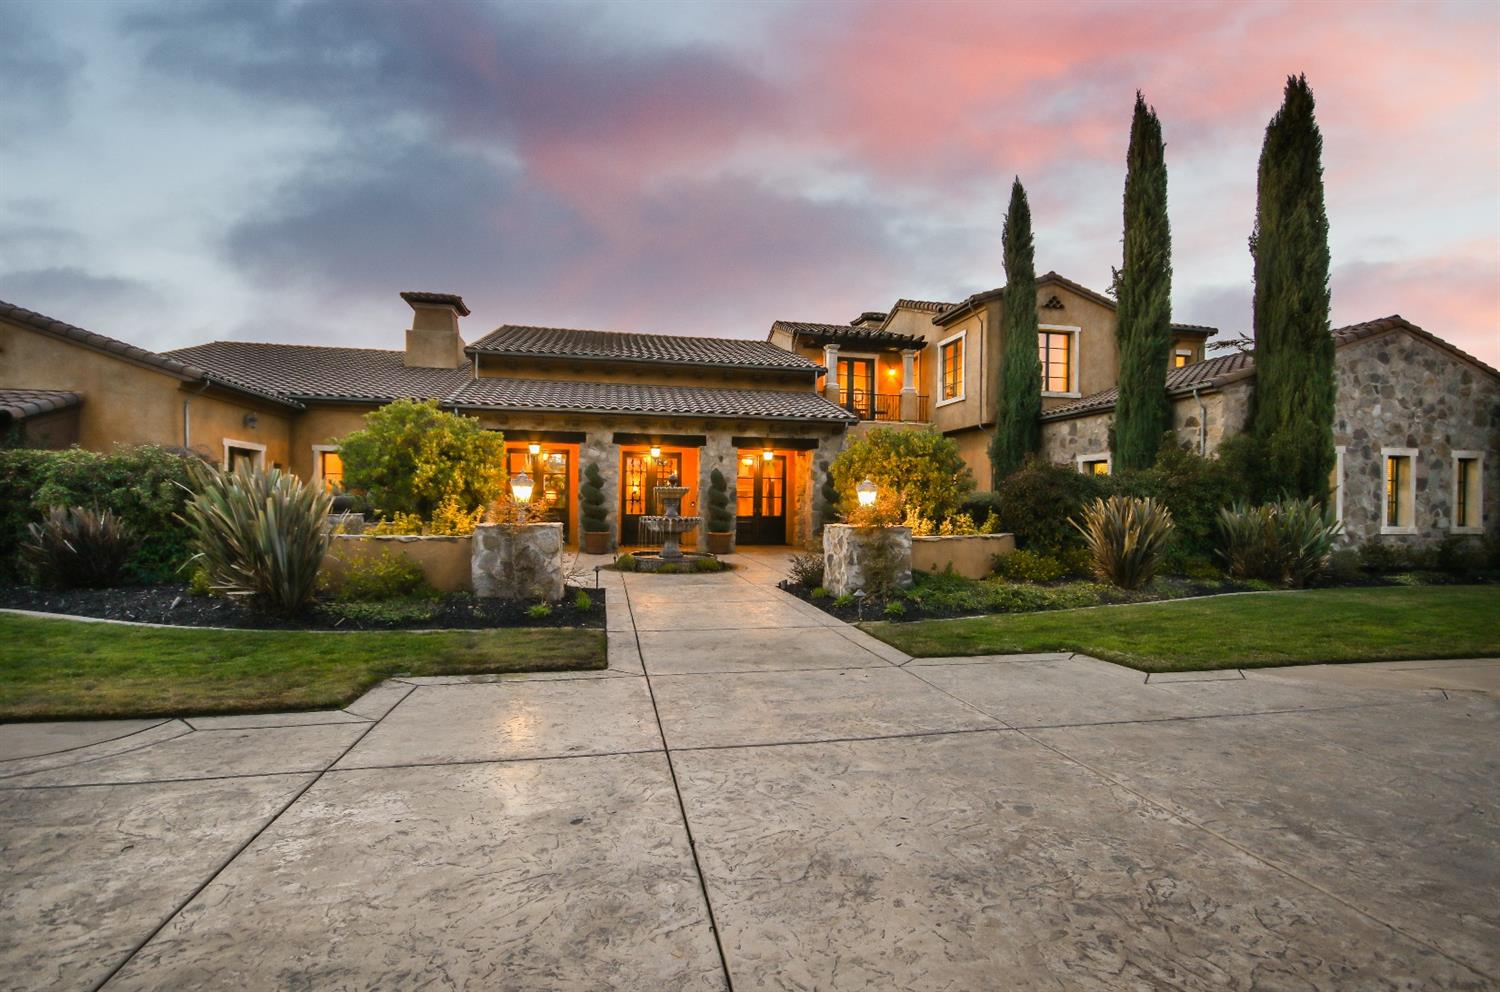 Bella Terra Estates Crown Jewel is completed with an old world European design. Tucked away in Granite Bay is a majestic Mediterranean Tuscan estate approx 8,600sq ft.This amazing estate offers world class luxury living, masterfully designed for ultimate entertainment. Out door loggia, with outdoor kitchen, Boccie ball court, private pond and lots of water features. Private guest quarters. Amazing 8 car garage and an additional detached motor home garage.